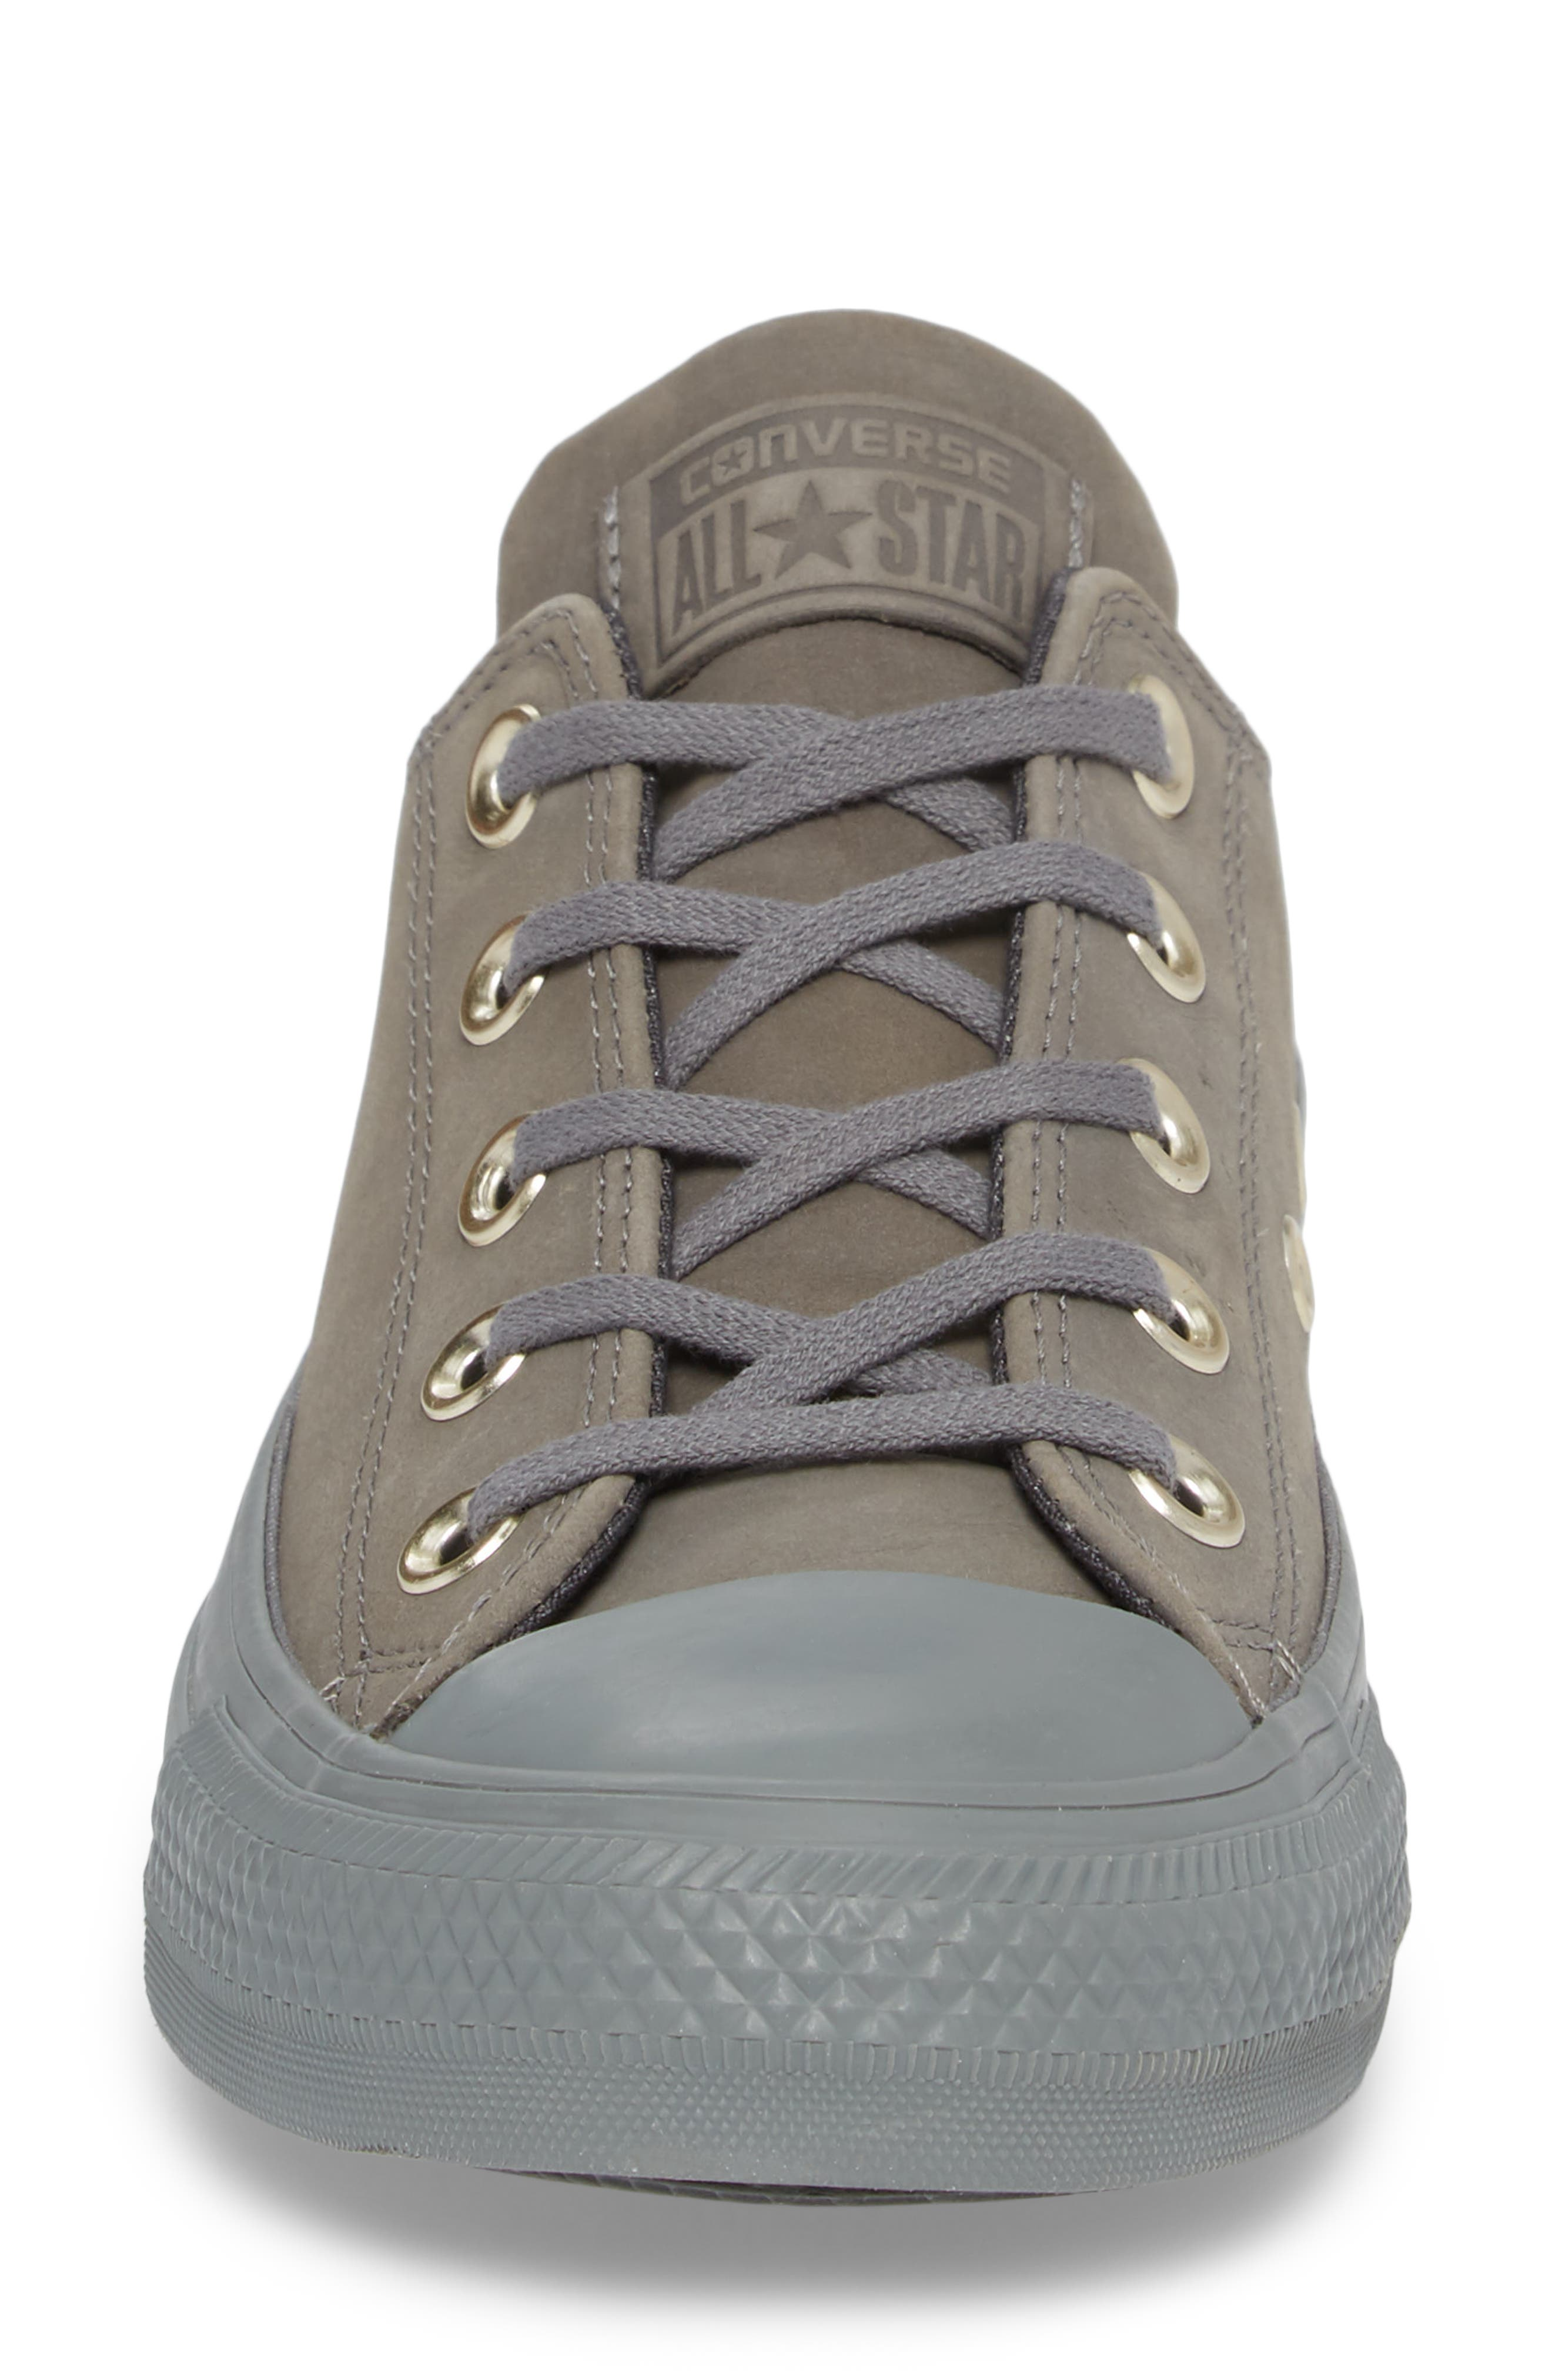 All Star<sup>®</sup> Nubuck OX Low Top Sneaker,                             Alternate thumbnail 4, color,                             028